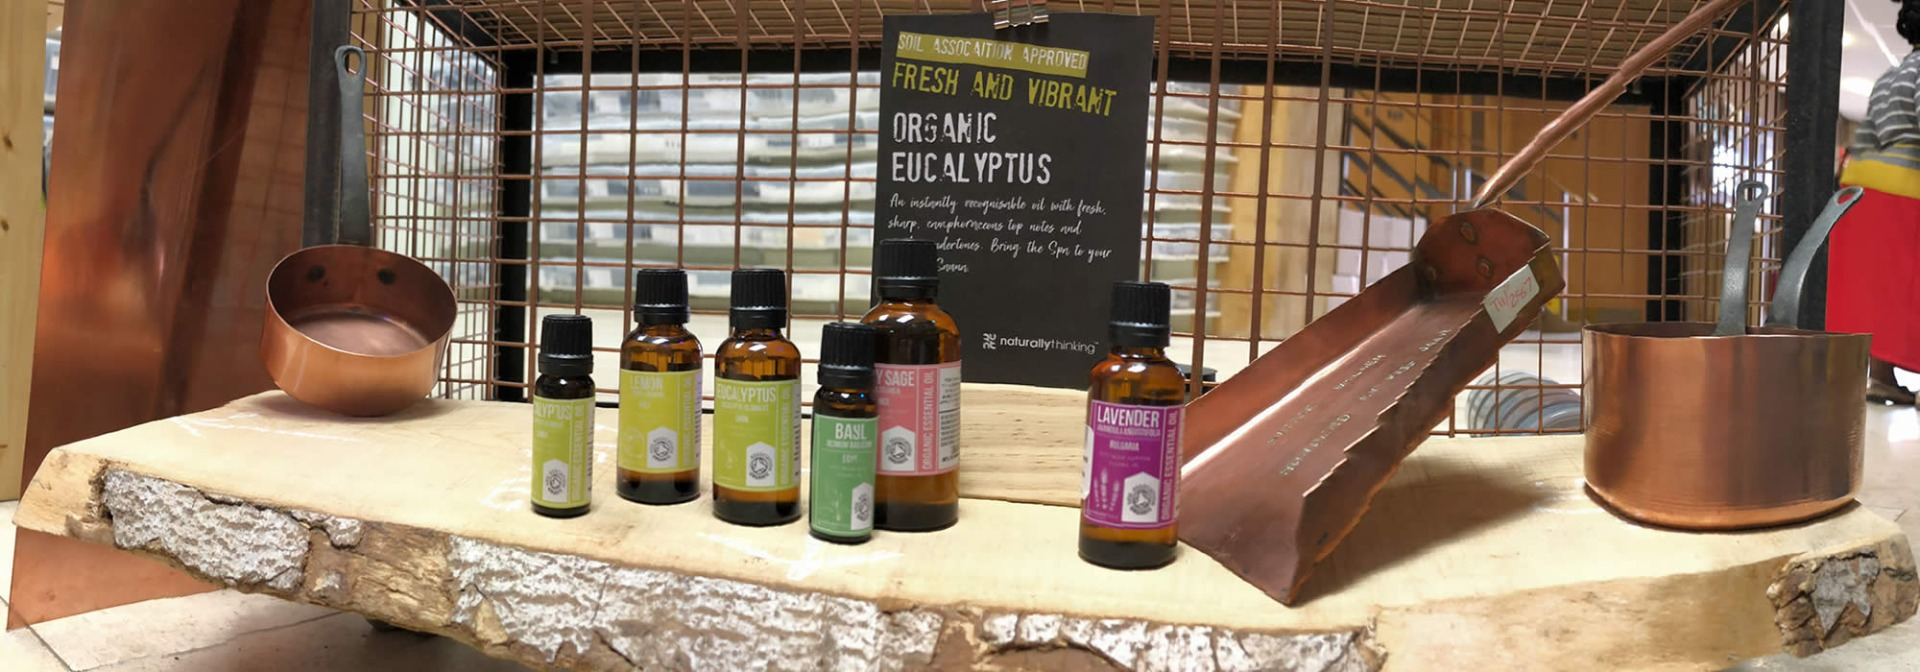 organic-essential-oil-header-2018.jpg